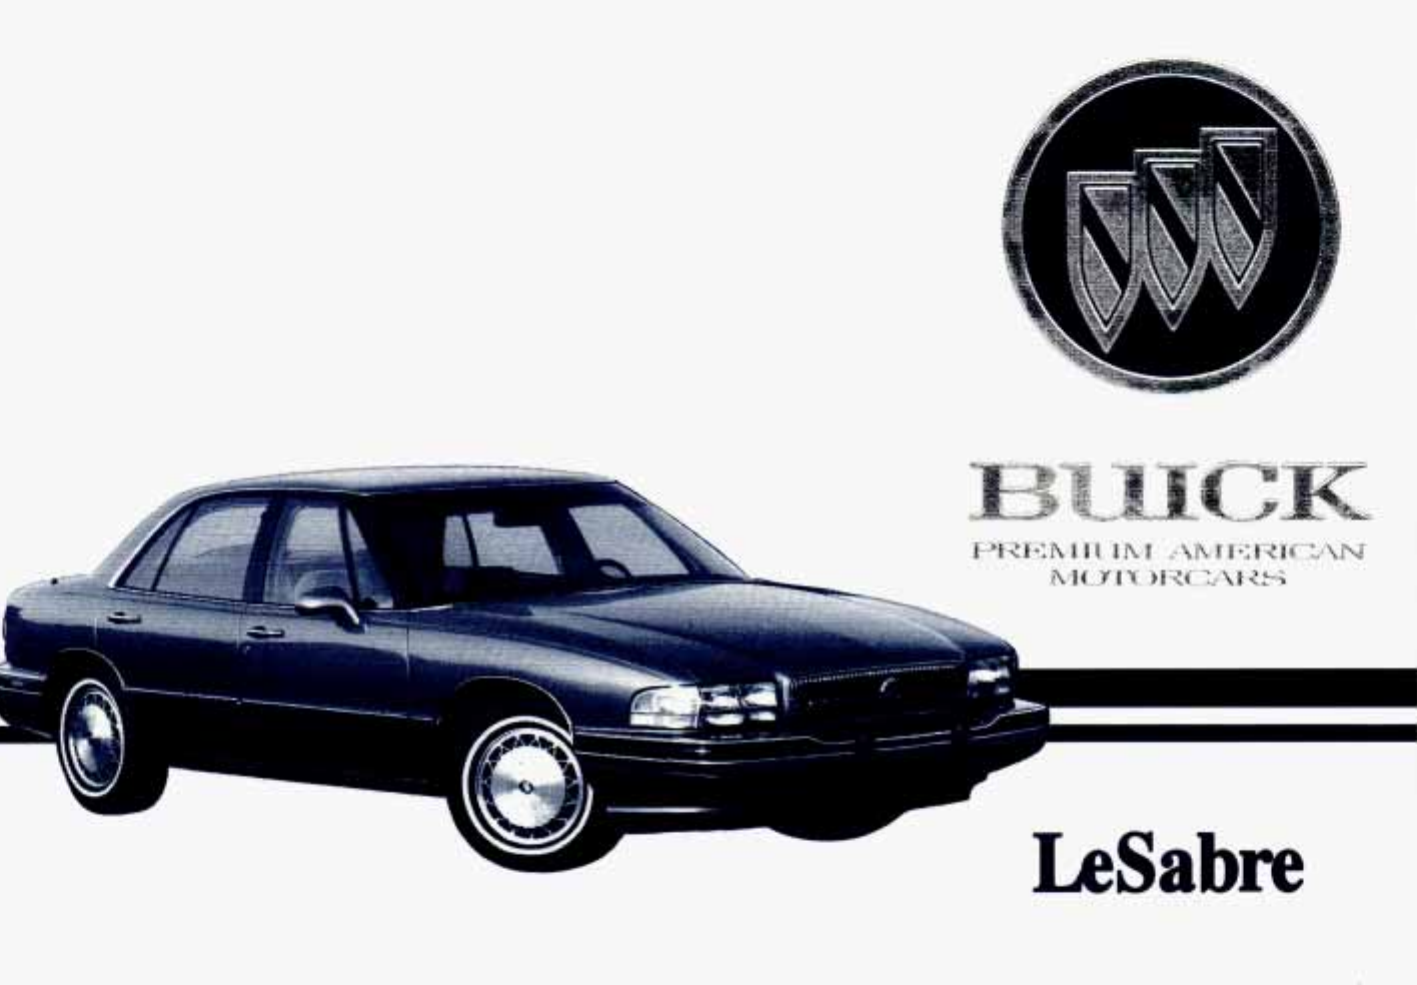 See our other Buick Le Sabre Manuals: 2004 Buick Lesabre Owners Manual